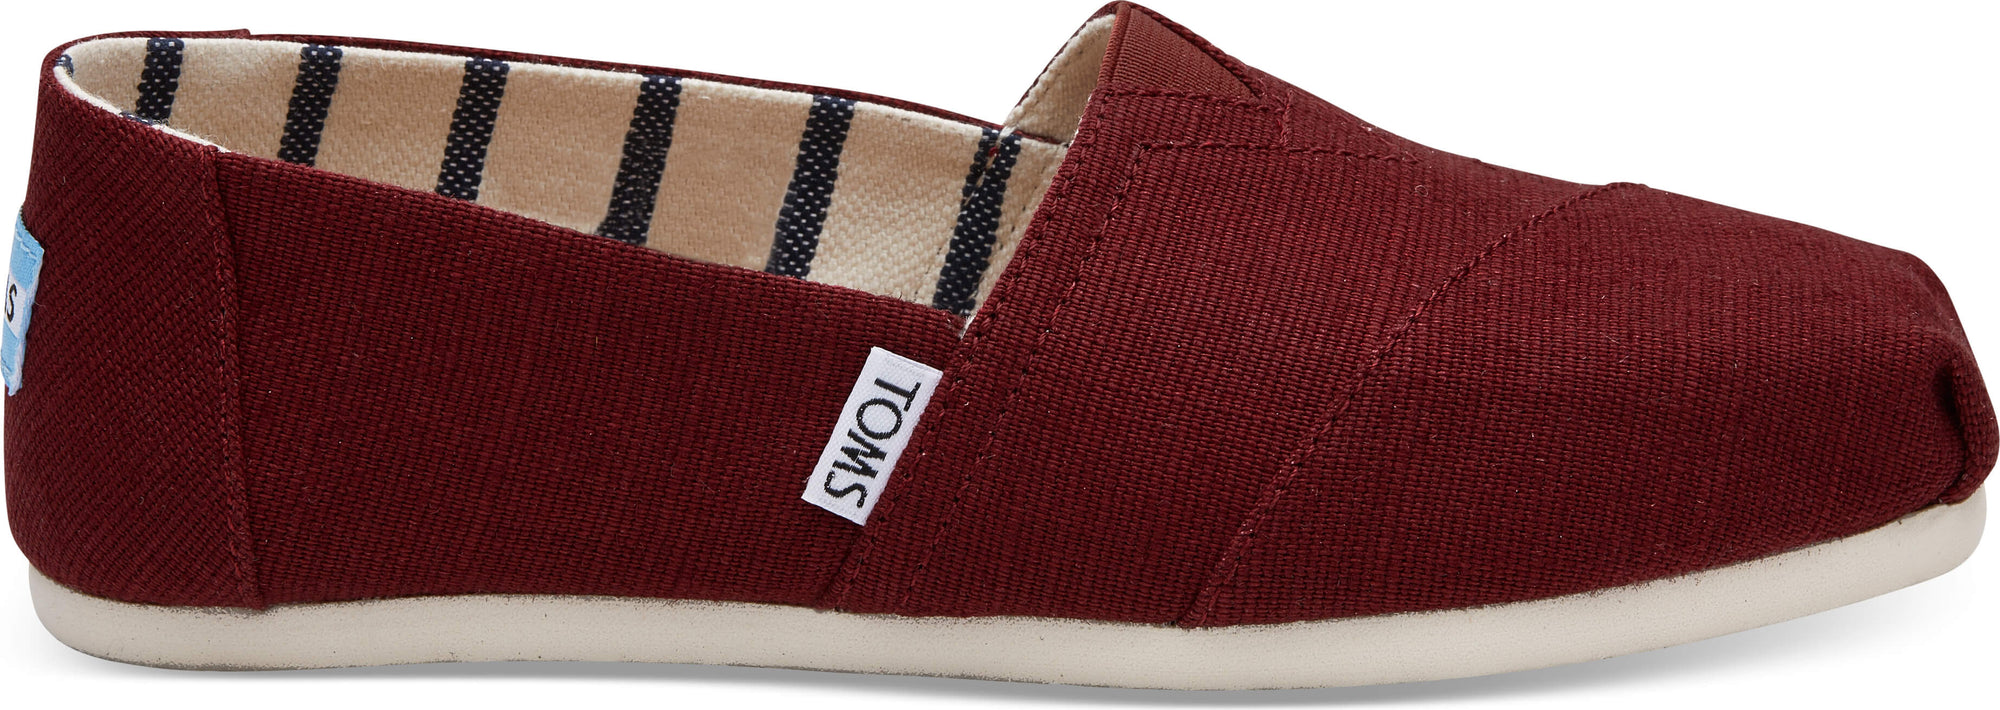 f0fecea5f36 Black Cherry Heritage Canvas Women s Classics